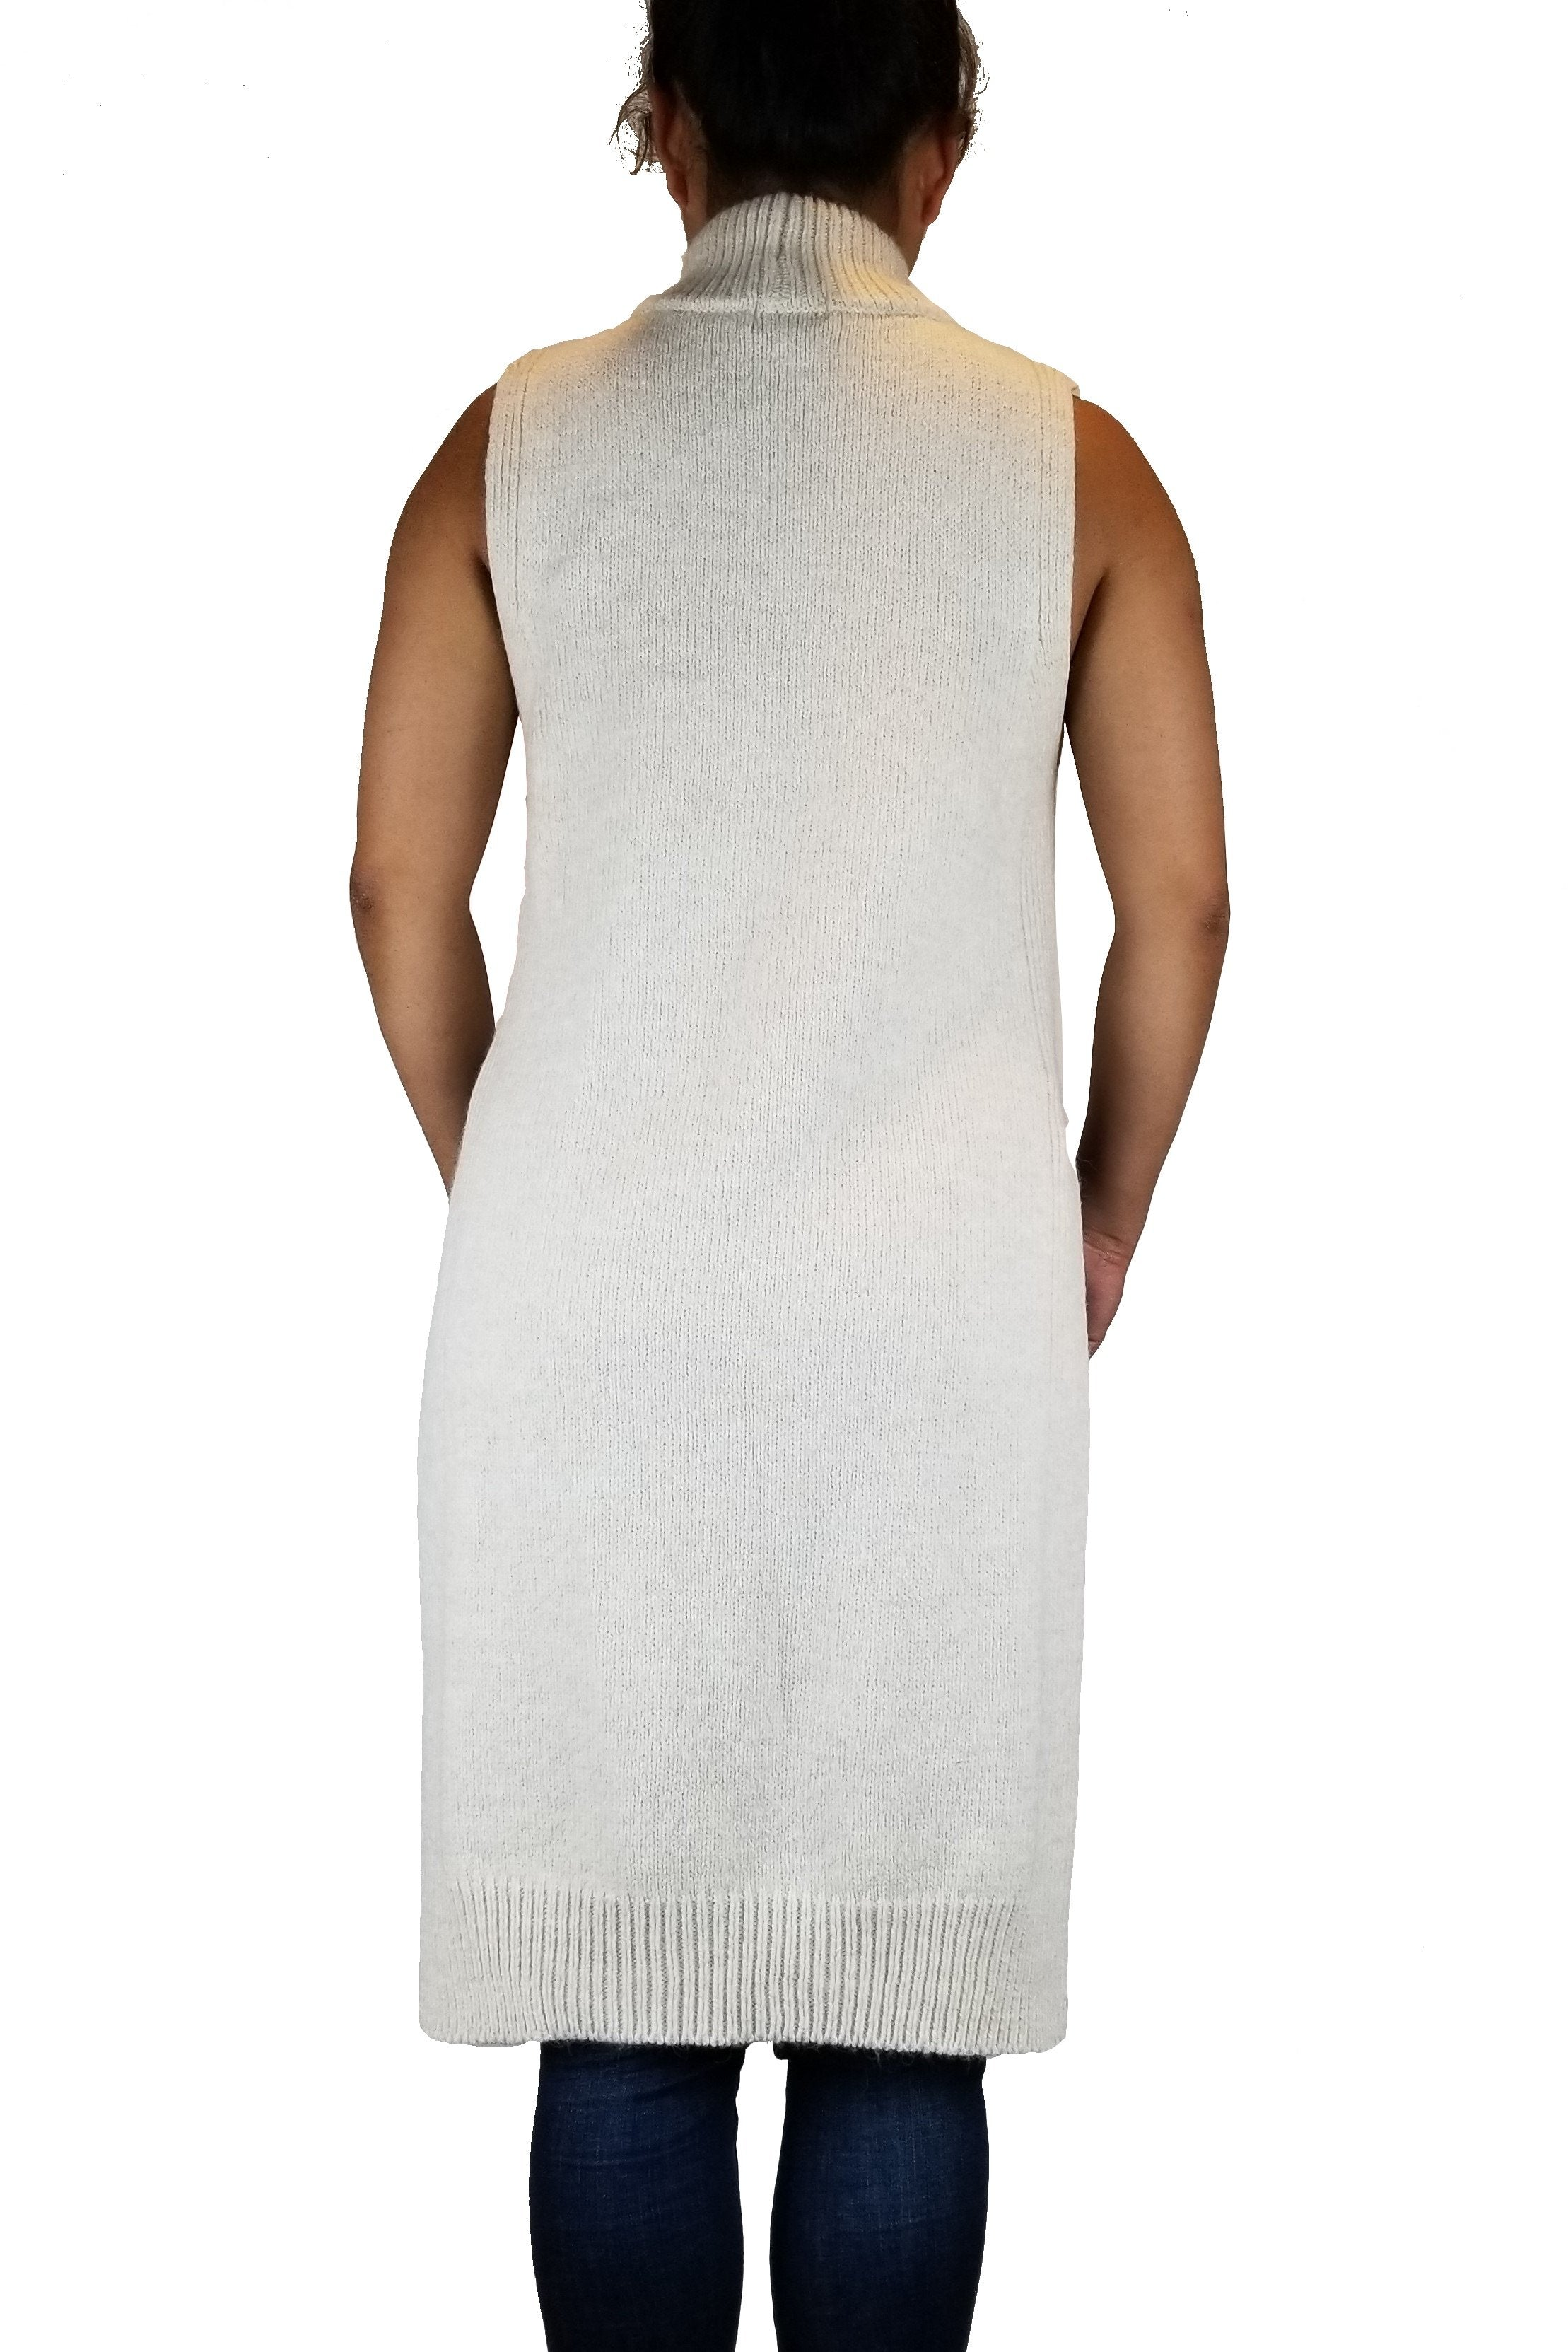 Topshop Sleeveless Sweater dress, I never understood sleeveless sweater dresses until the regular sweater sleeves failed to slip into a skinny fall jacket. Enough said., White, 90%Arcrylic, 7% Polyamide, 3% Polyester, women's long white sweater, women's comfy turtle neck sleeveless sweater